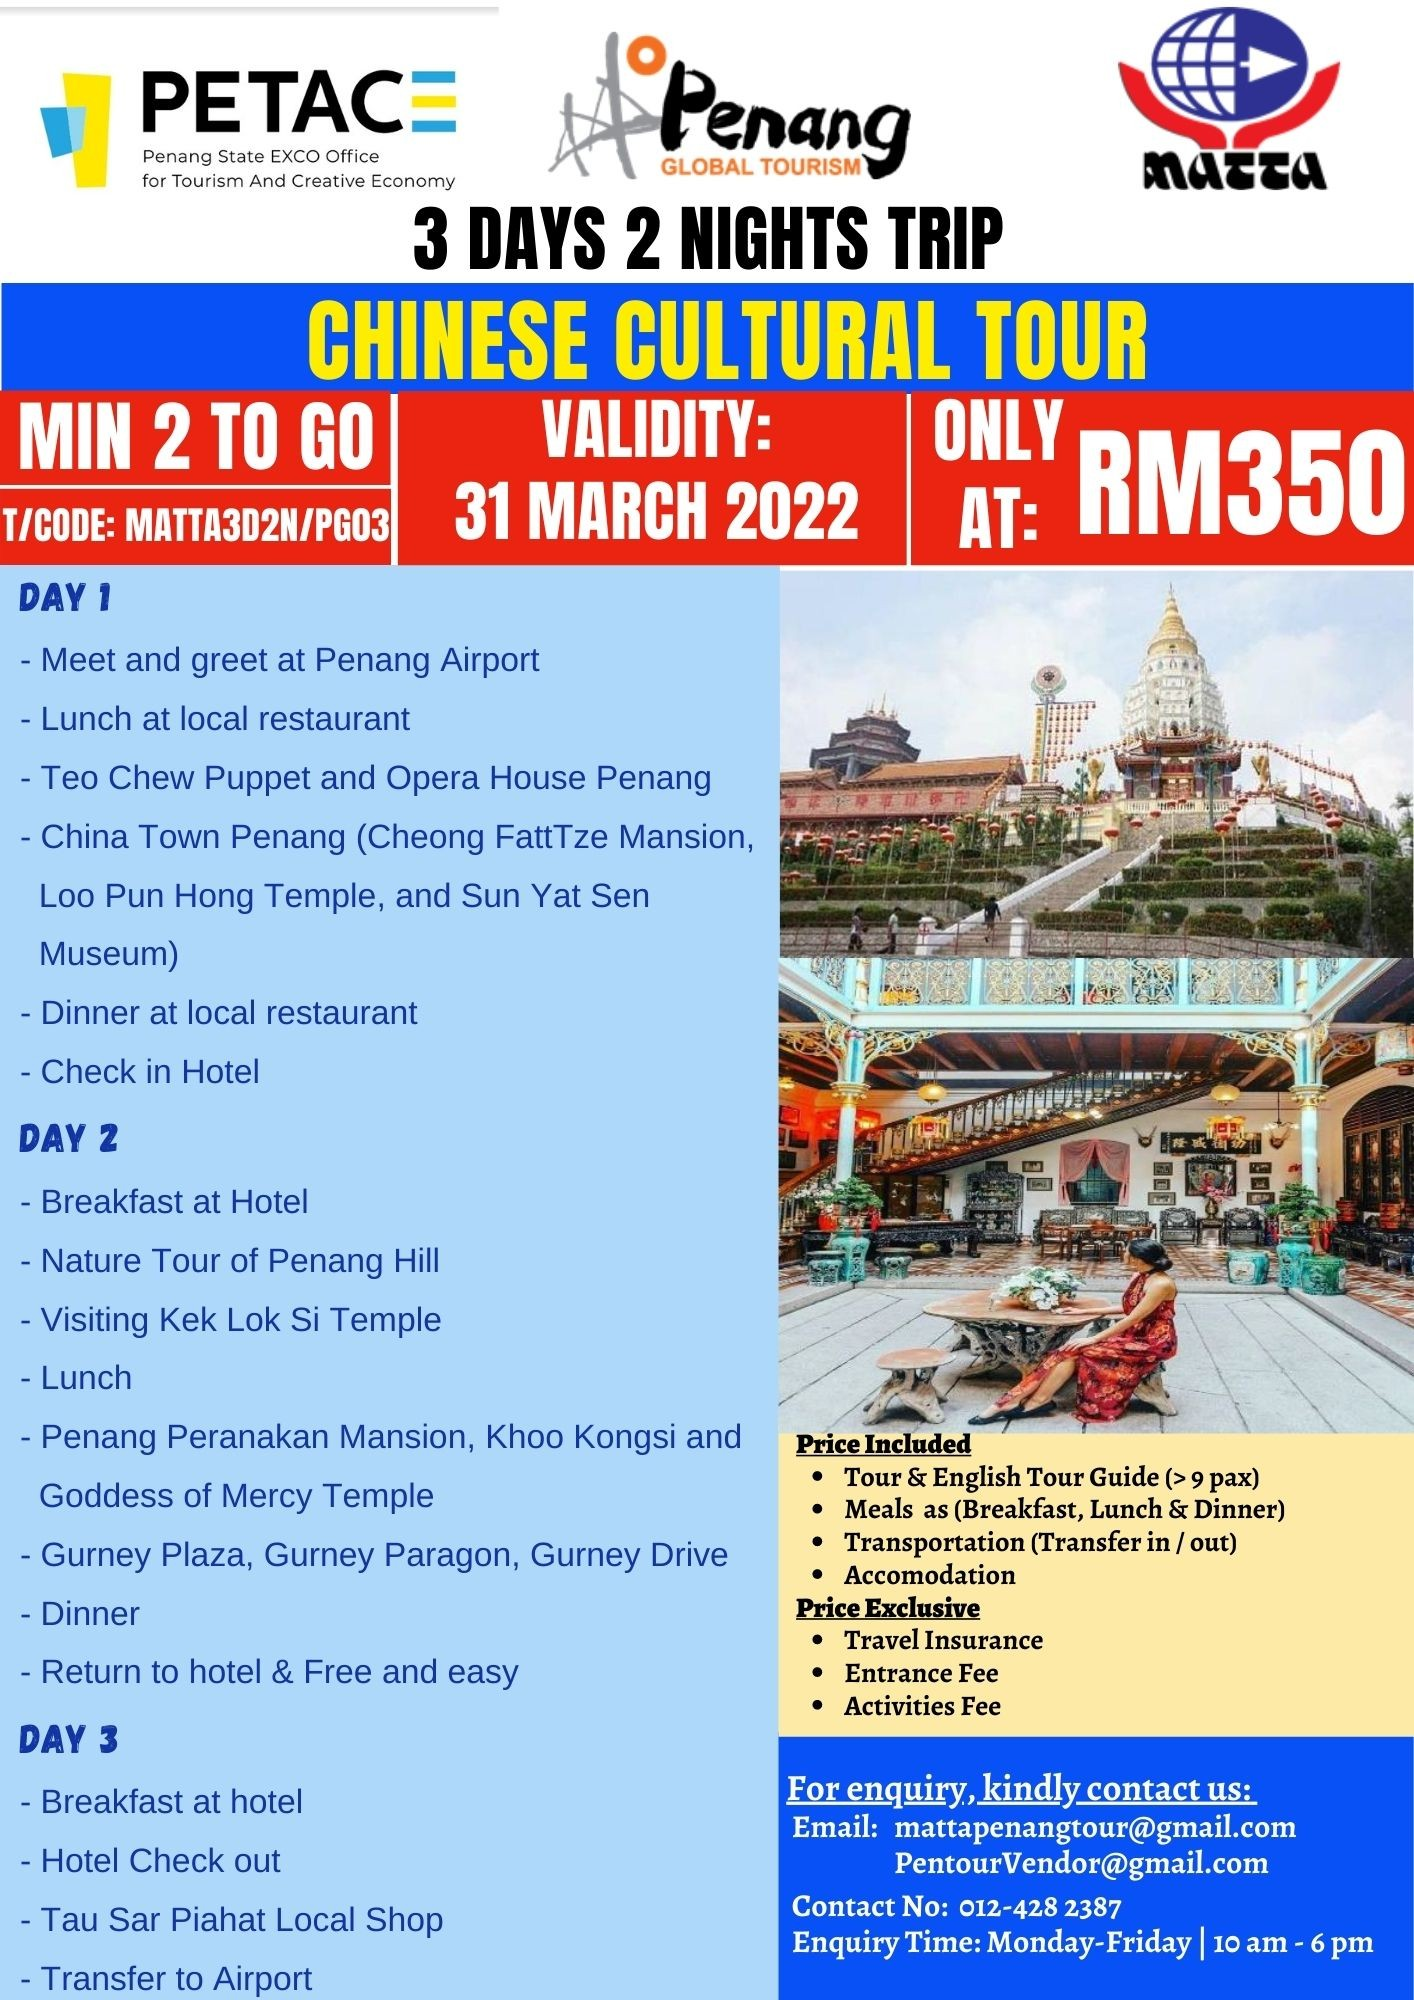 3 Days 2 Nights Trip - Chinese Cultural Tour